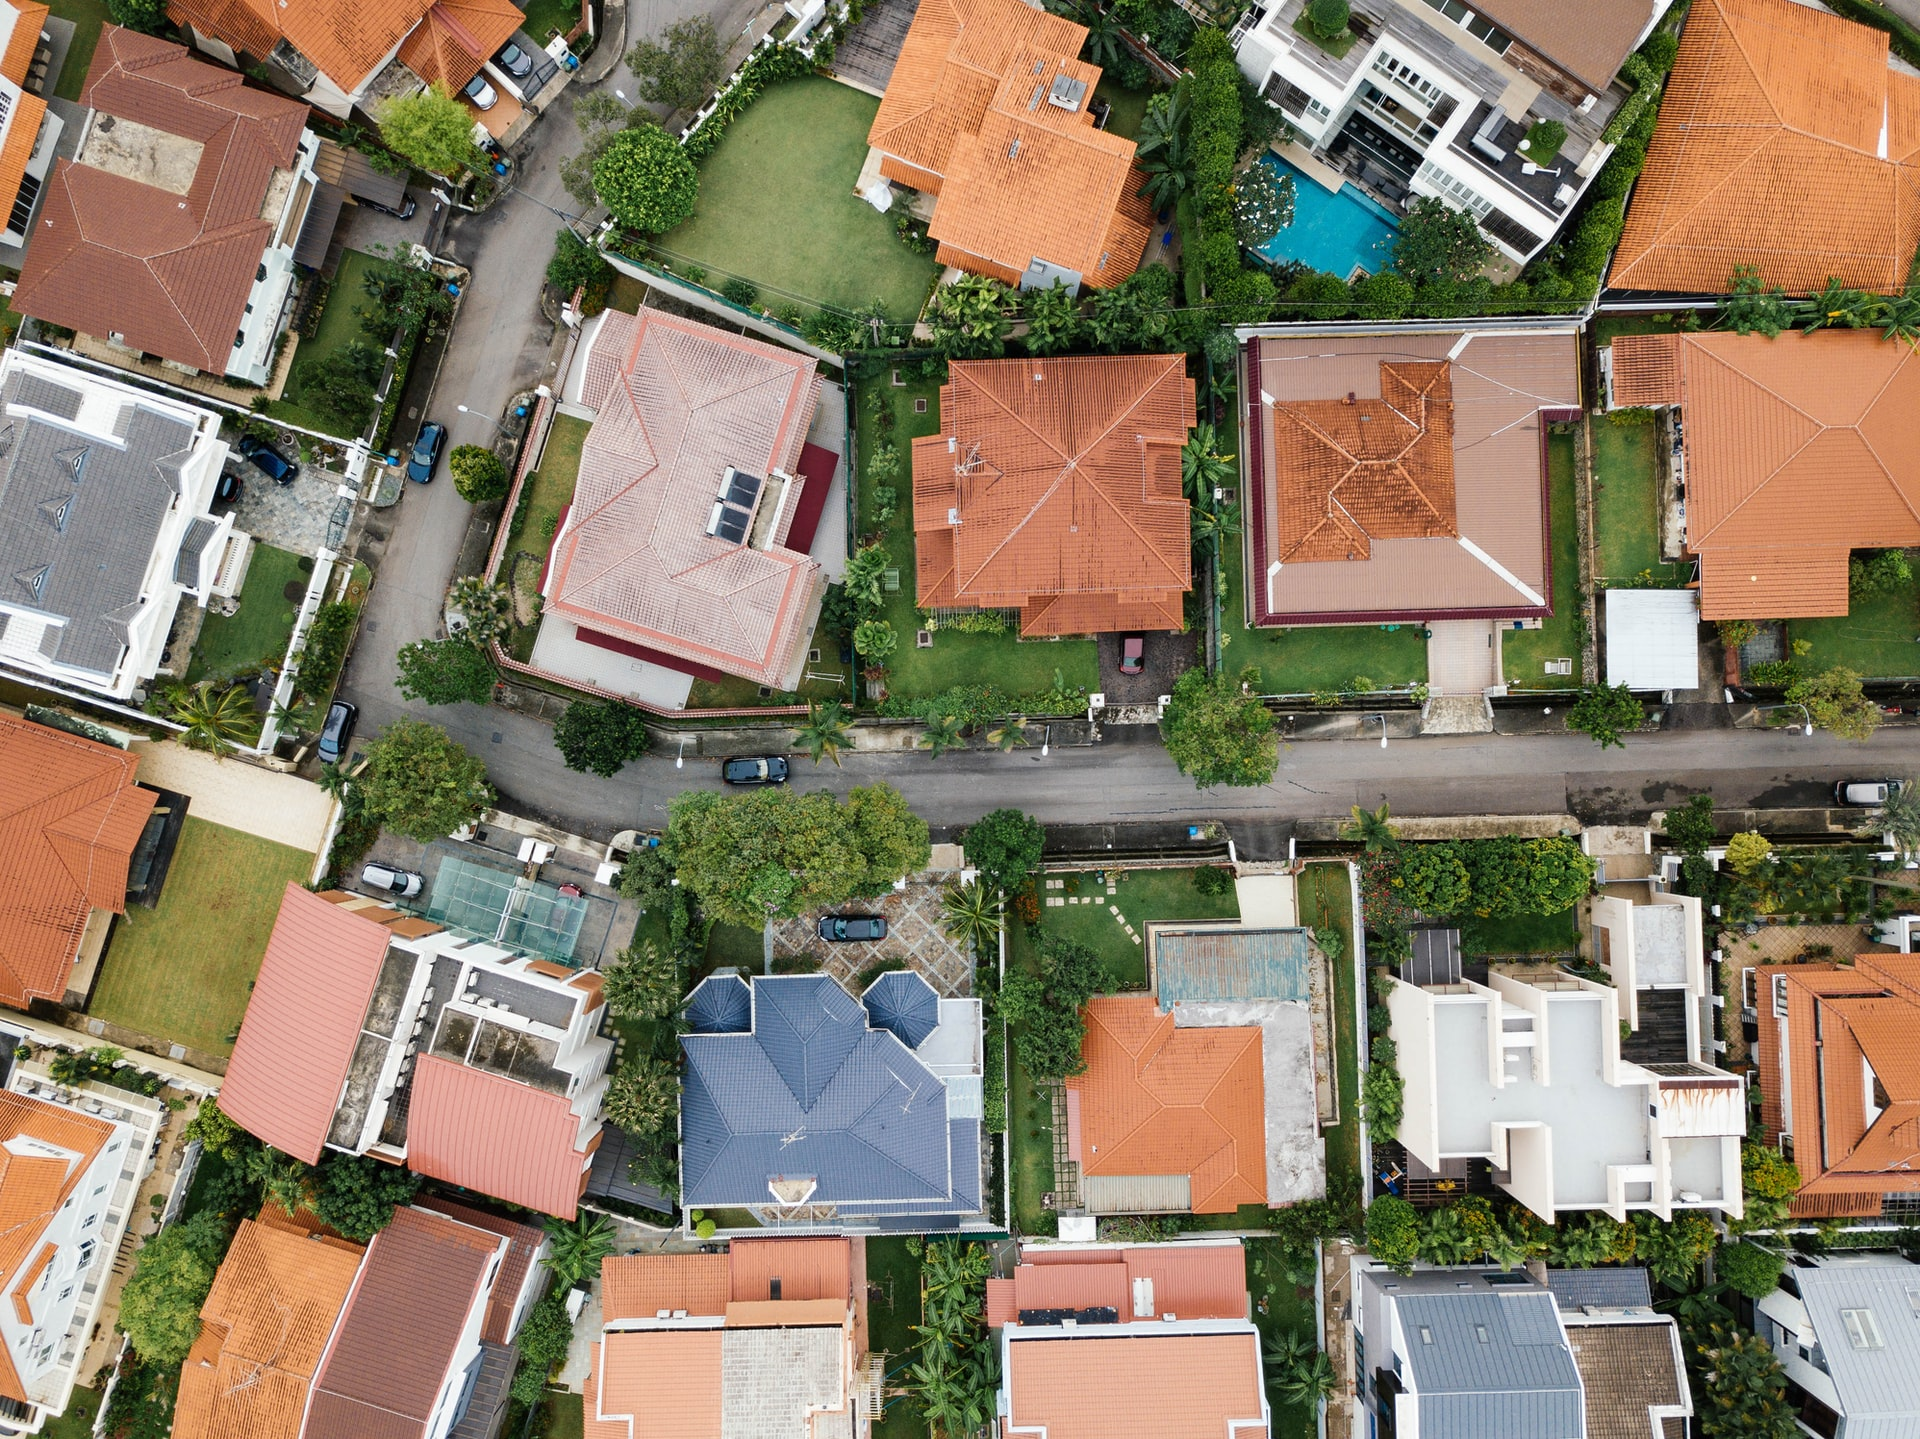 Setback ordinances are laws which govern how close you can build to property boundaries. The simple idea behind these laws is to keep residential and commercial buildings from being built too close together